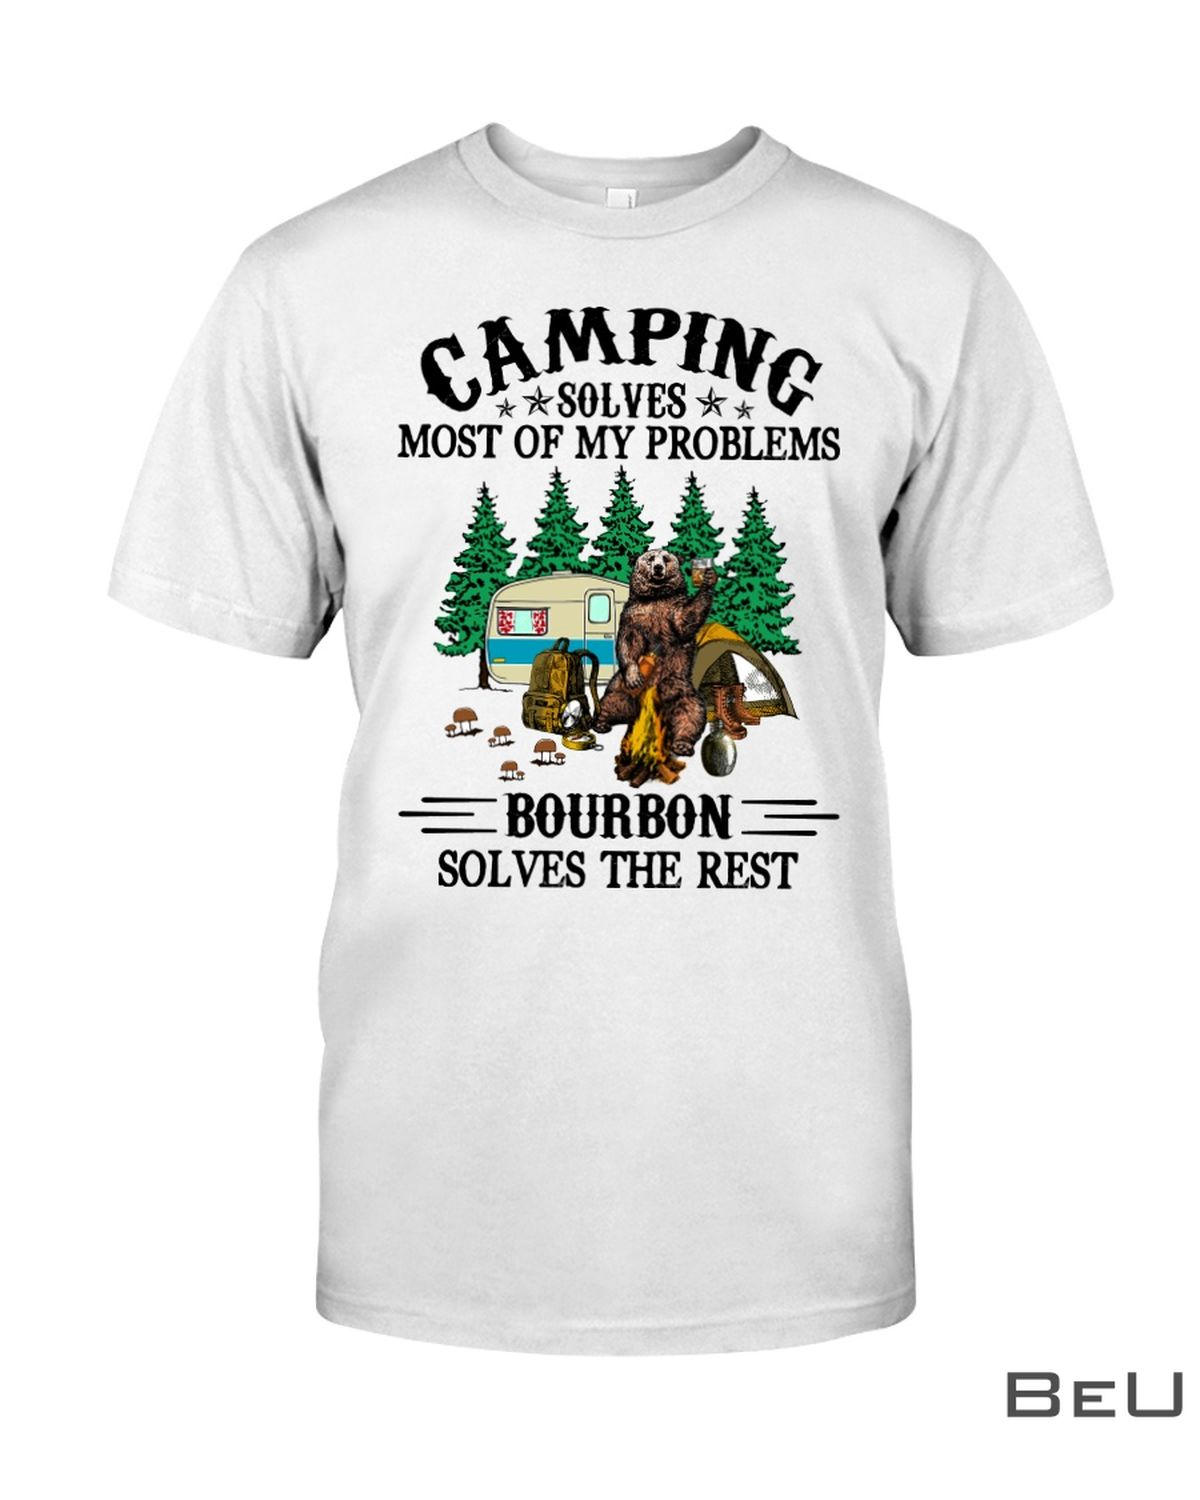 Camping Solves Most Of My Problems - Bourbon Solves The Rest Shirt